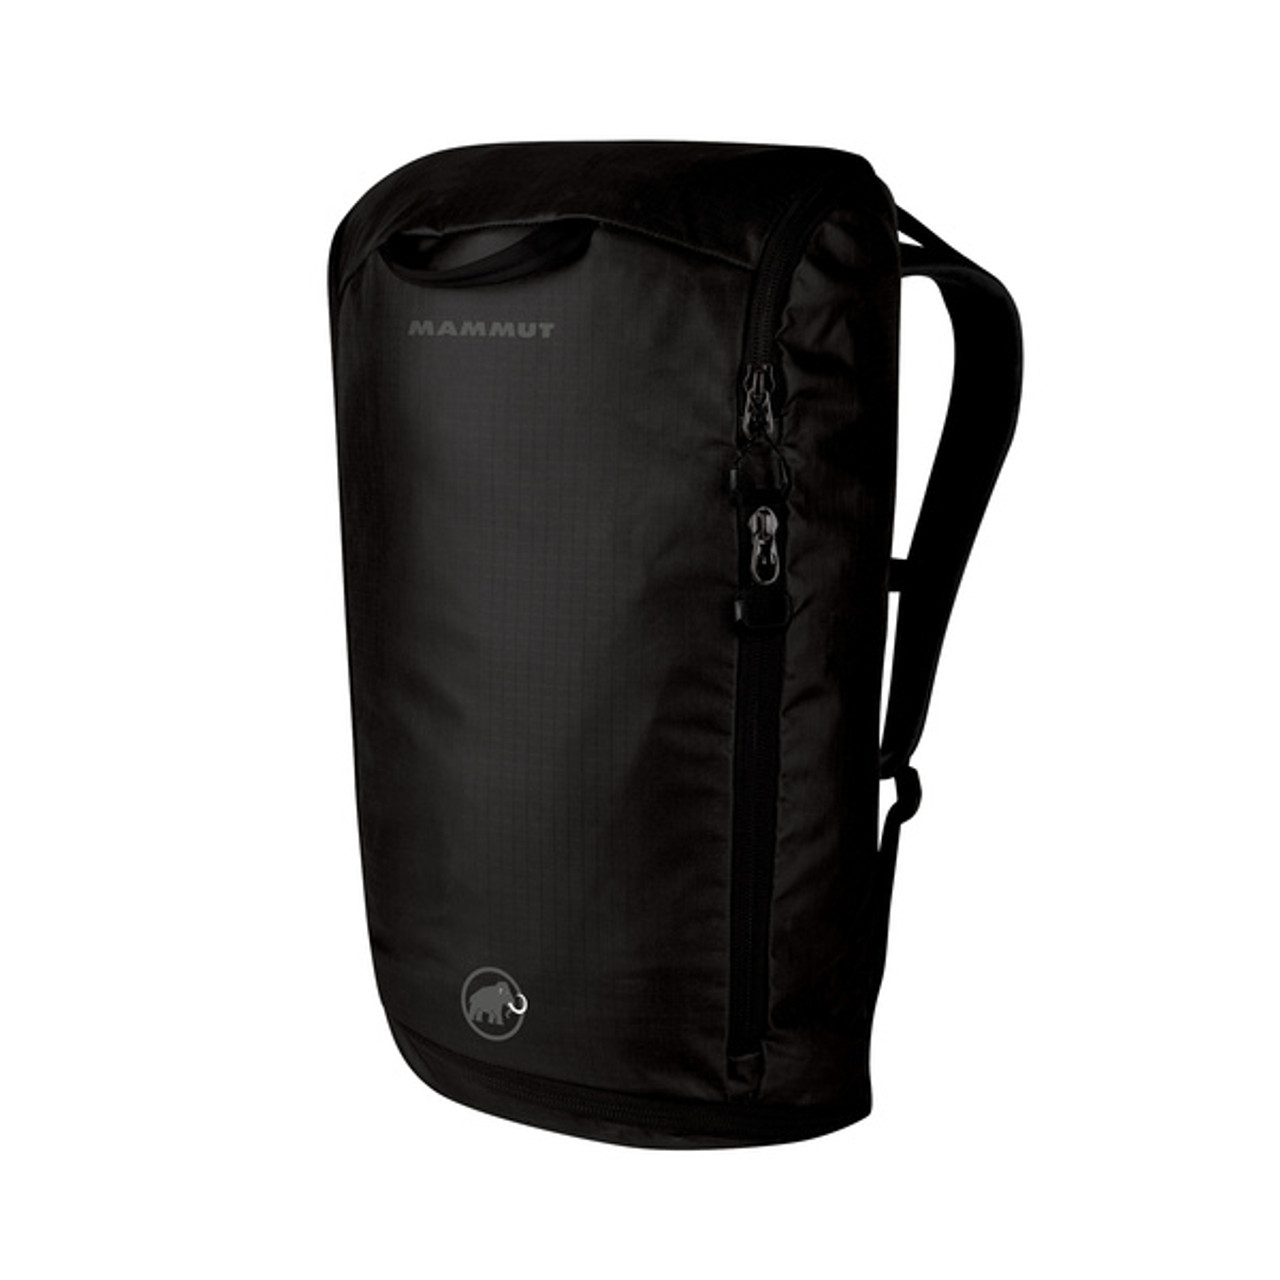 Mammut Neon Smart 35L - Front - Mountain Mail Order South Africa - Black